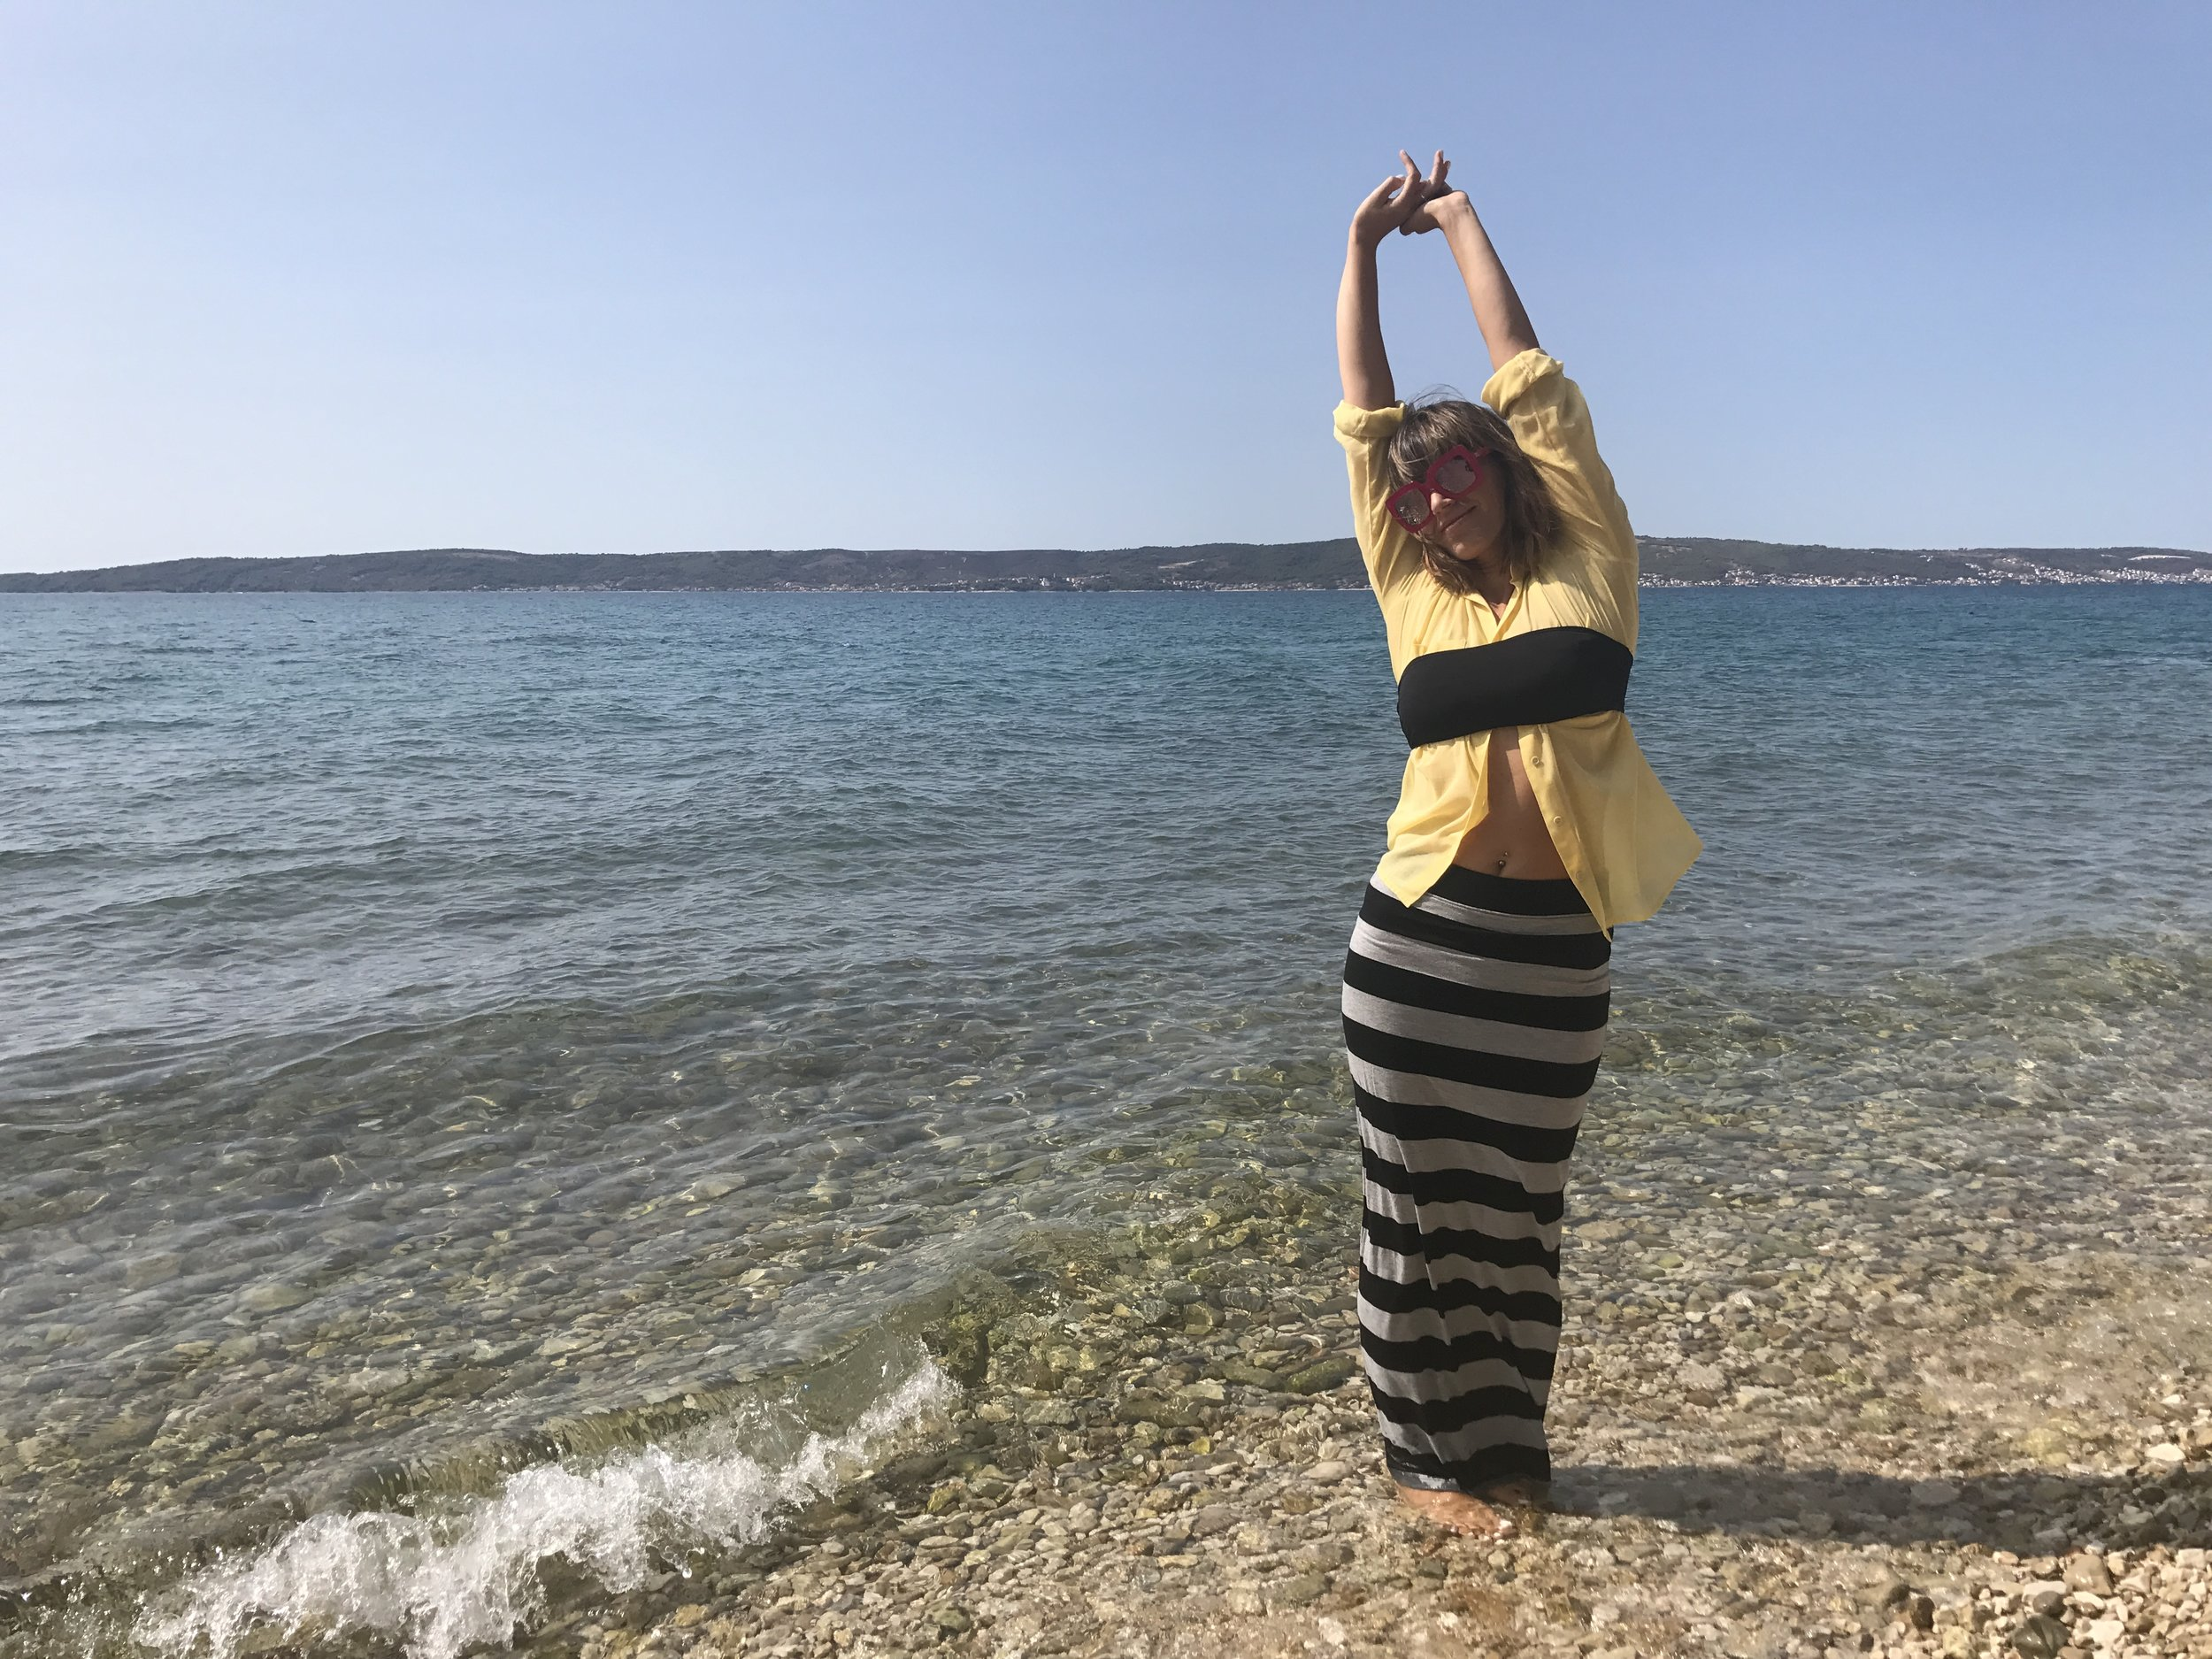 Black bikini top over transparent yellow blouse and striped grey and black maxi skirt